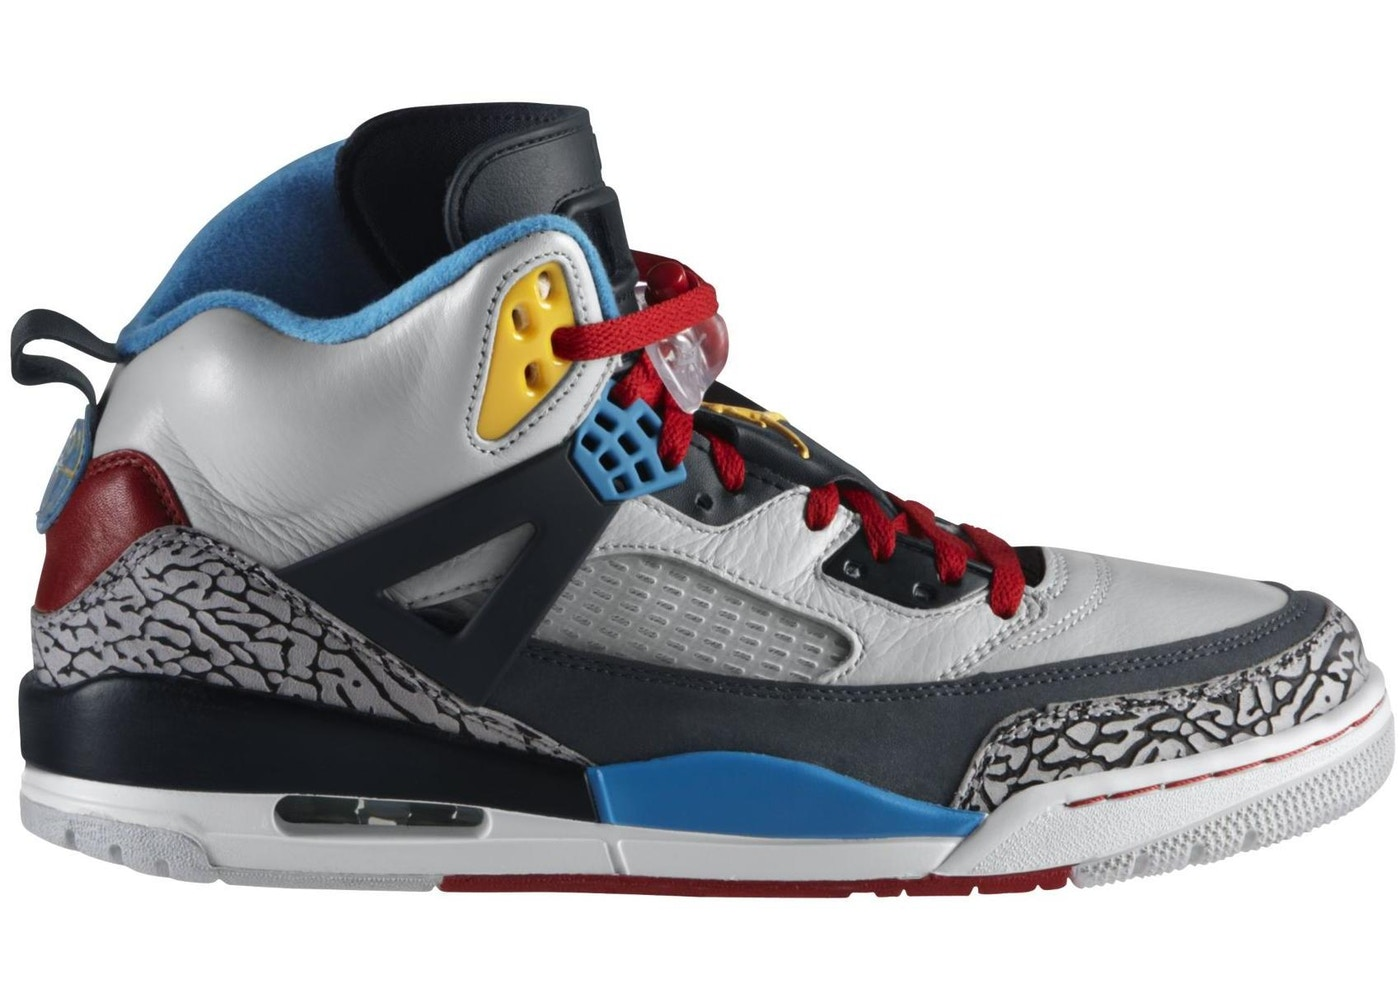 finest selection a5db8 5cace Sell. or Ask. Size 7. View All Bids. Jordan Spiz ike Bordeaux